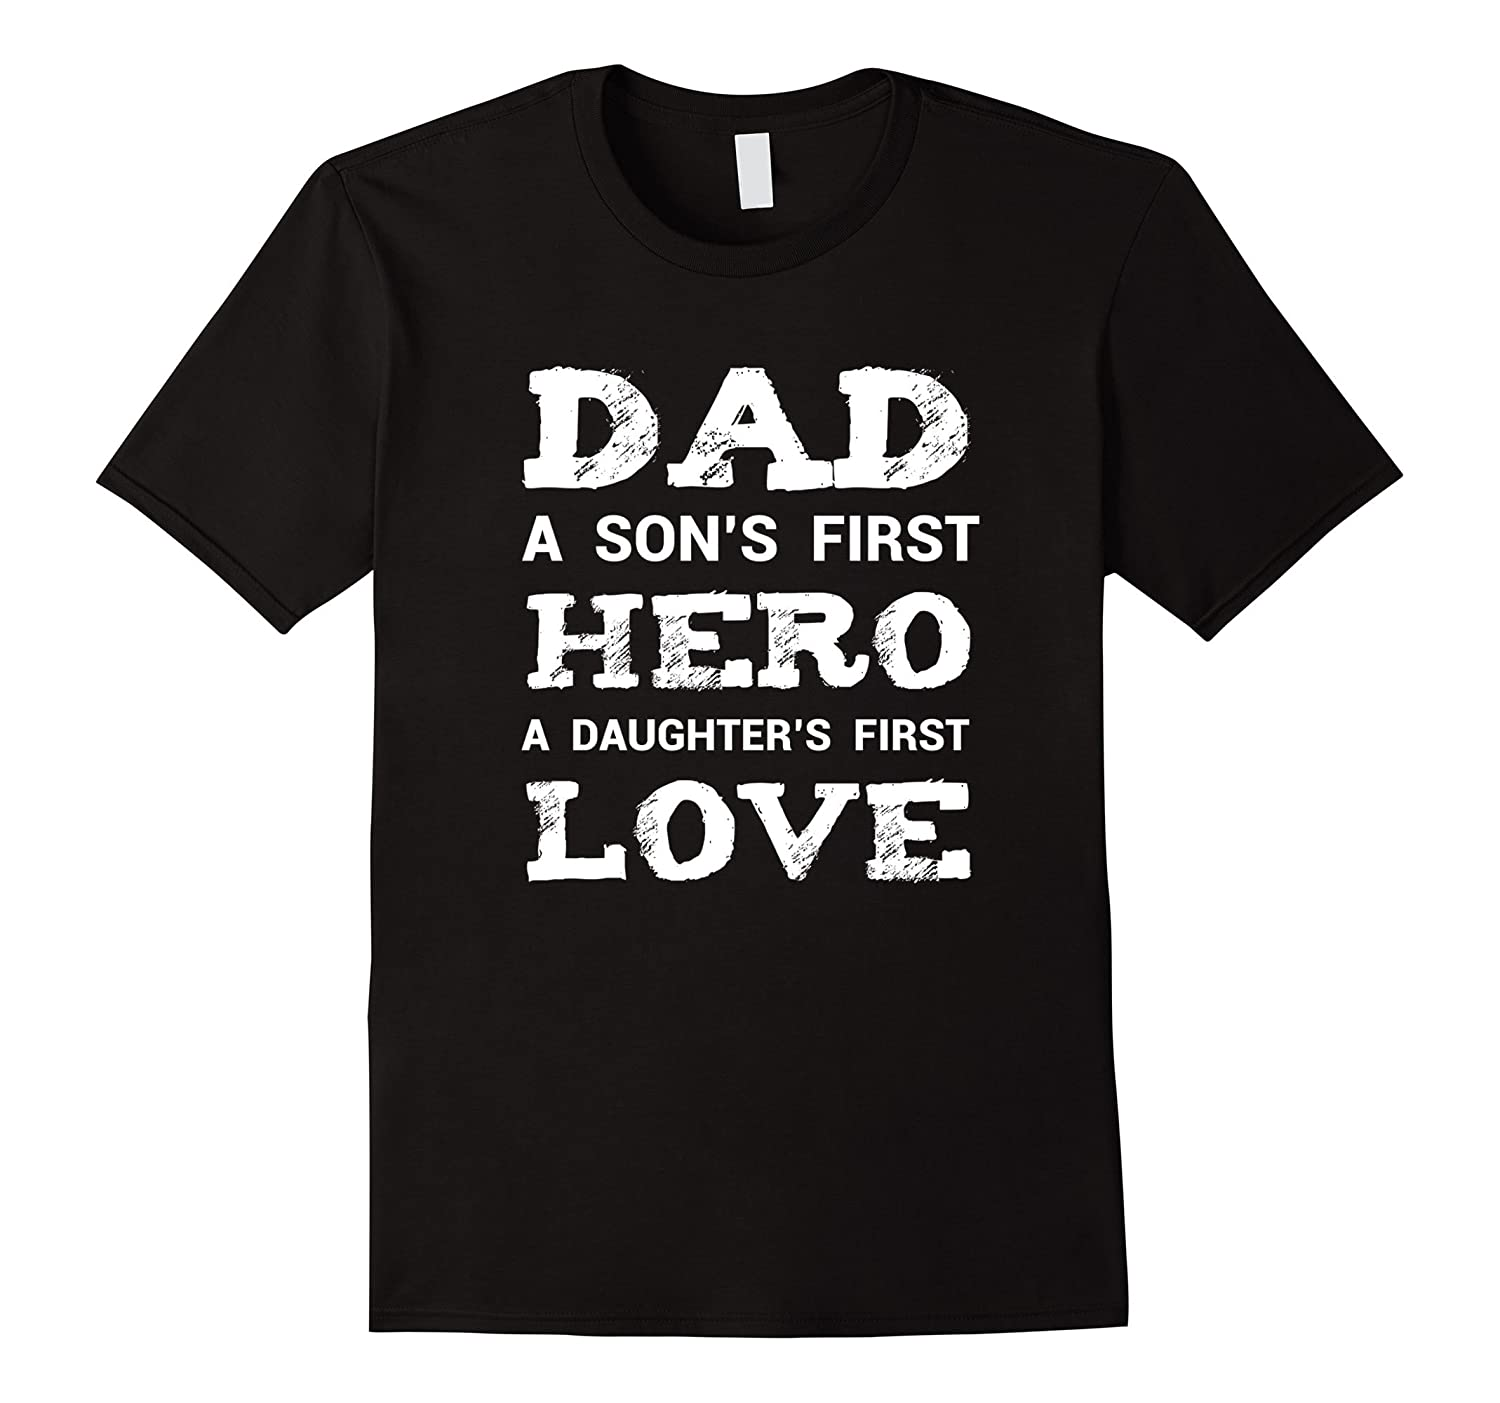 Cute Daddy Son Daughter Shirt New ...